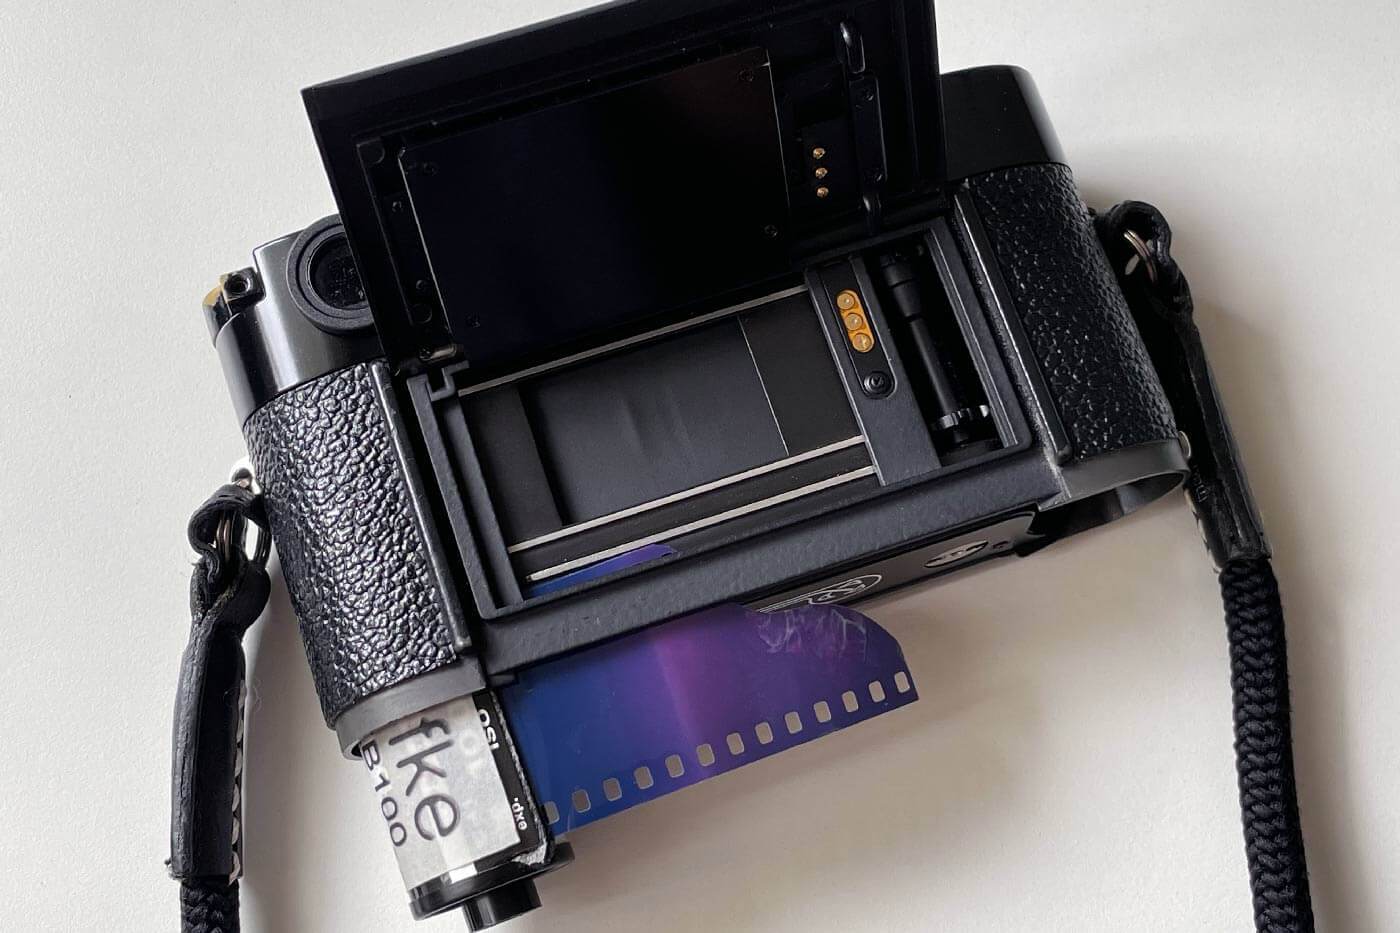 inserting-insert-film-into-camera-35mm-135-ekfe-black-and-white-bw-load-porper-best-way-top-view-leica-mp-position